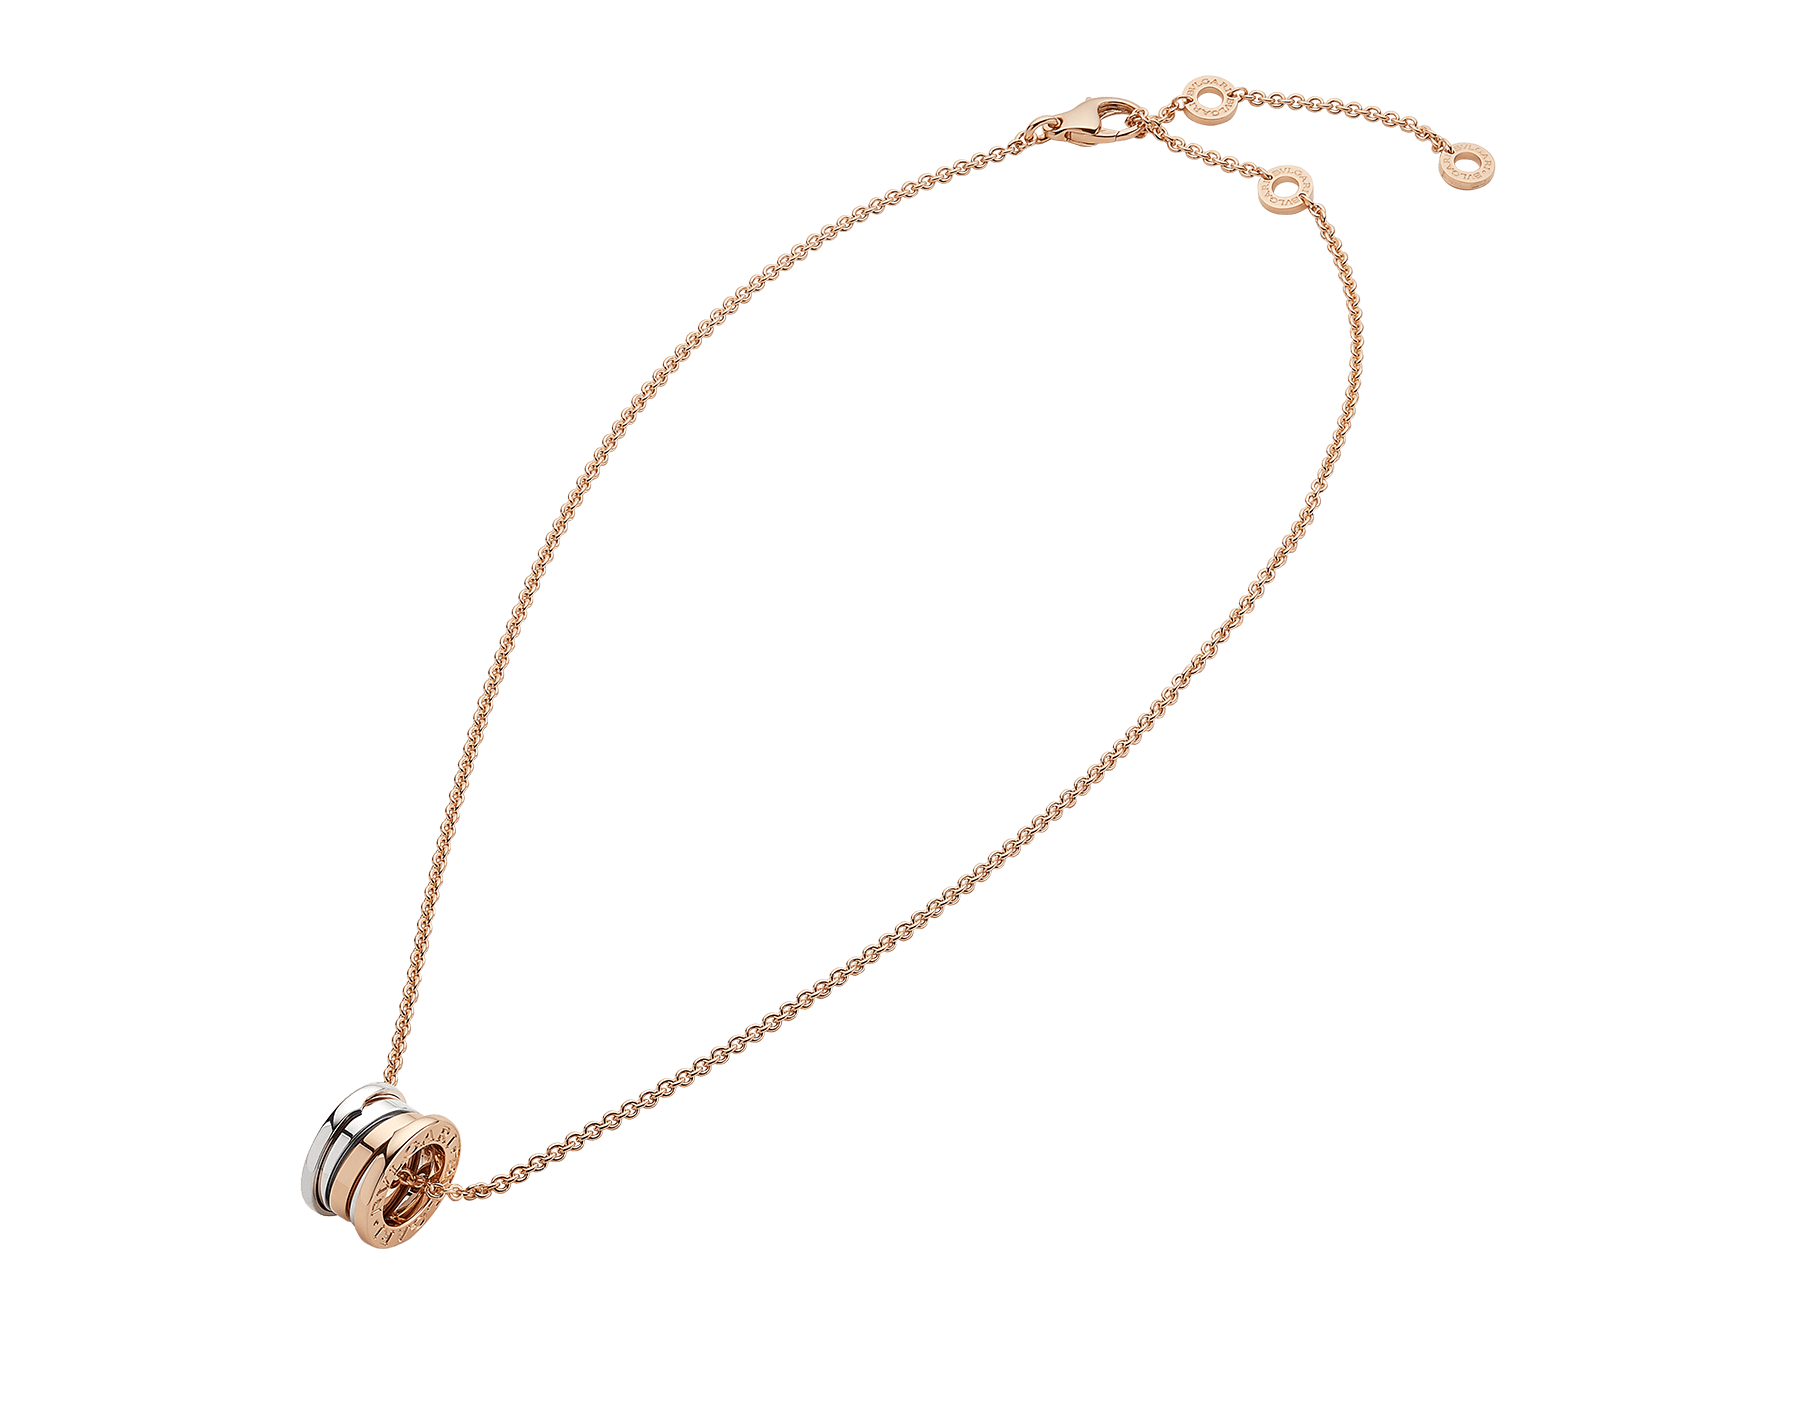 B.zero1 necklace with 18 kt rose and white gold pendant, 18 kt rose gold chain. 354903 image 2